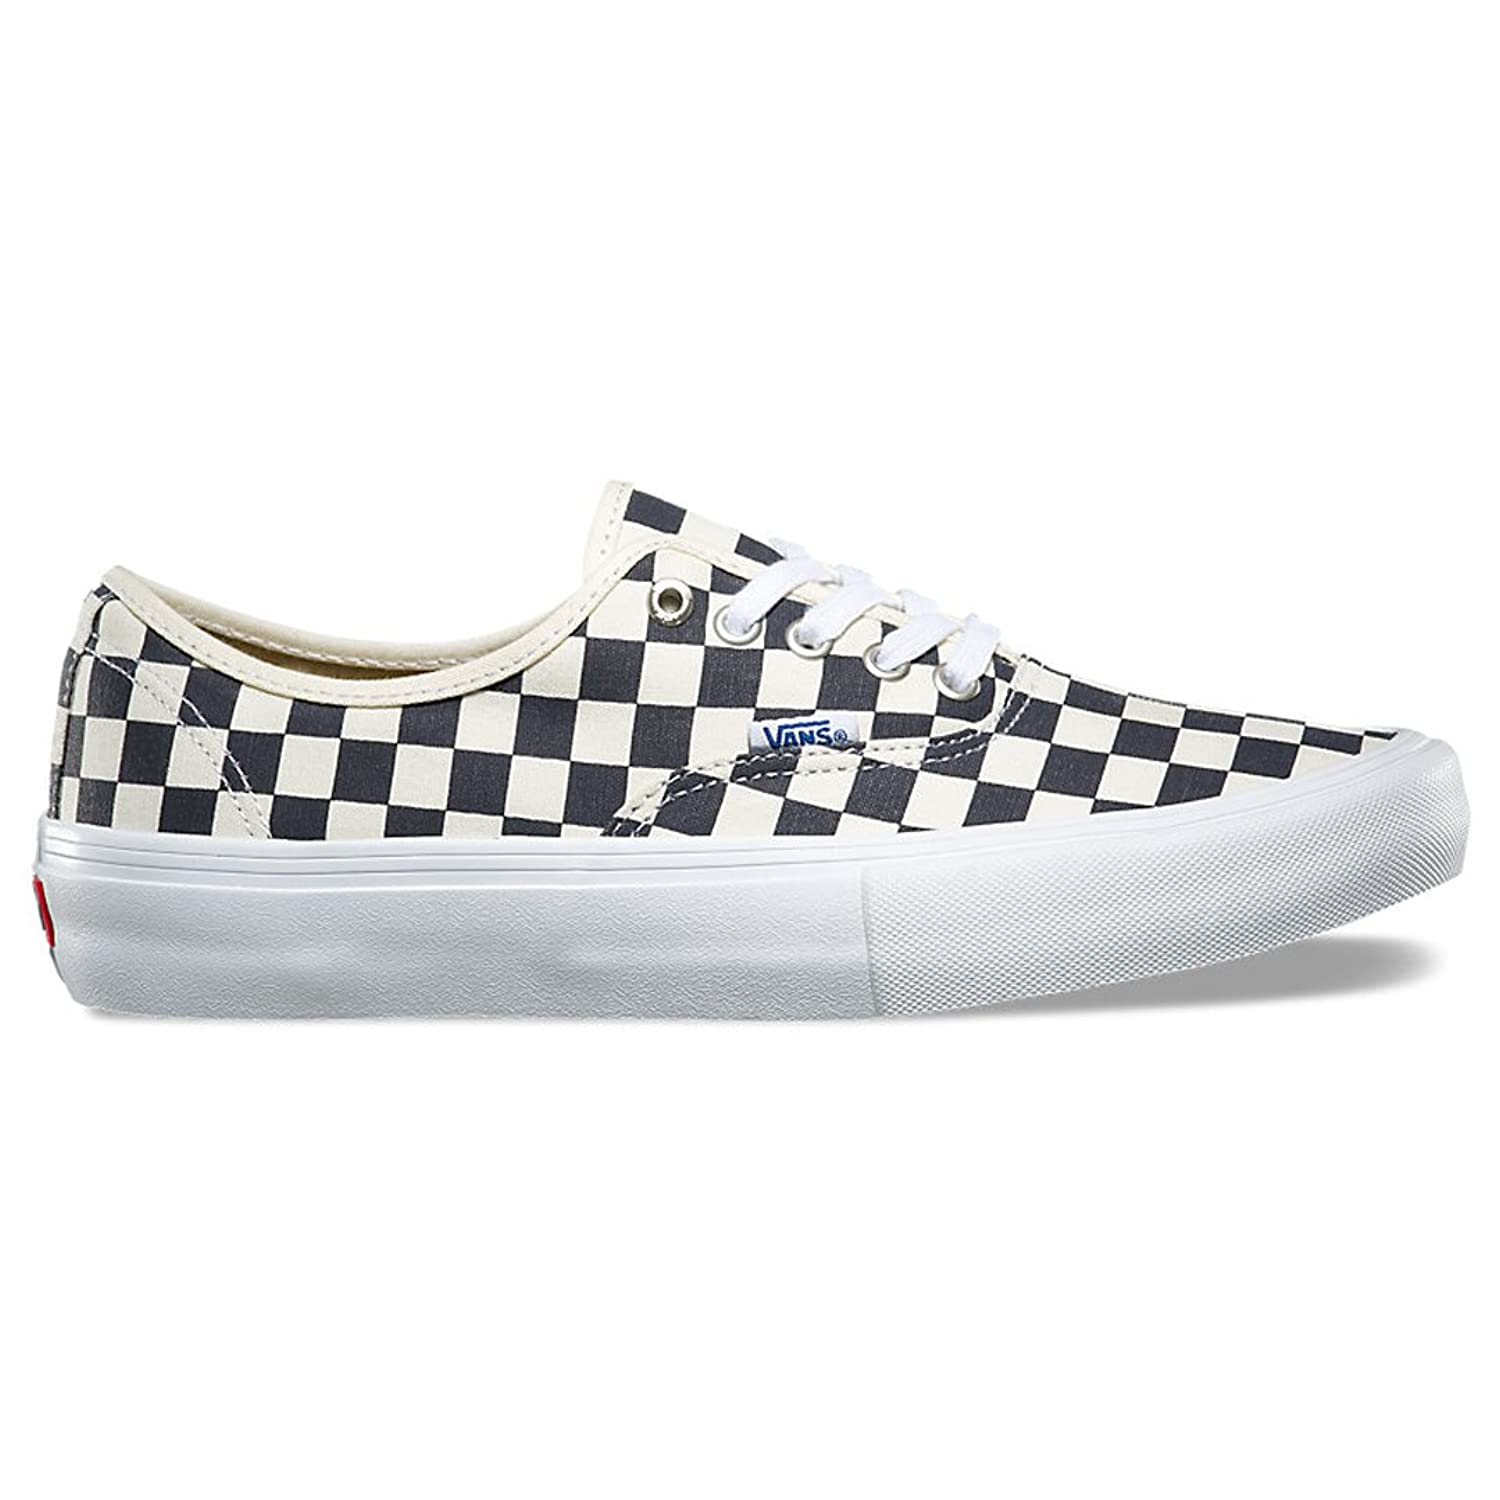 Fourgons Authentiques Pro Checkerboard fYZ4QHbgl